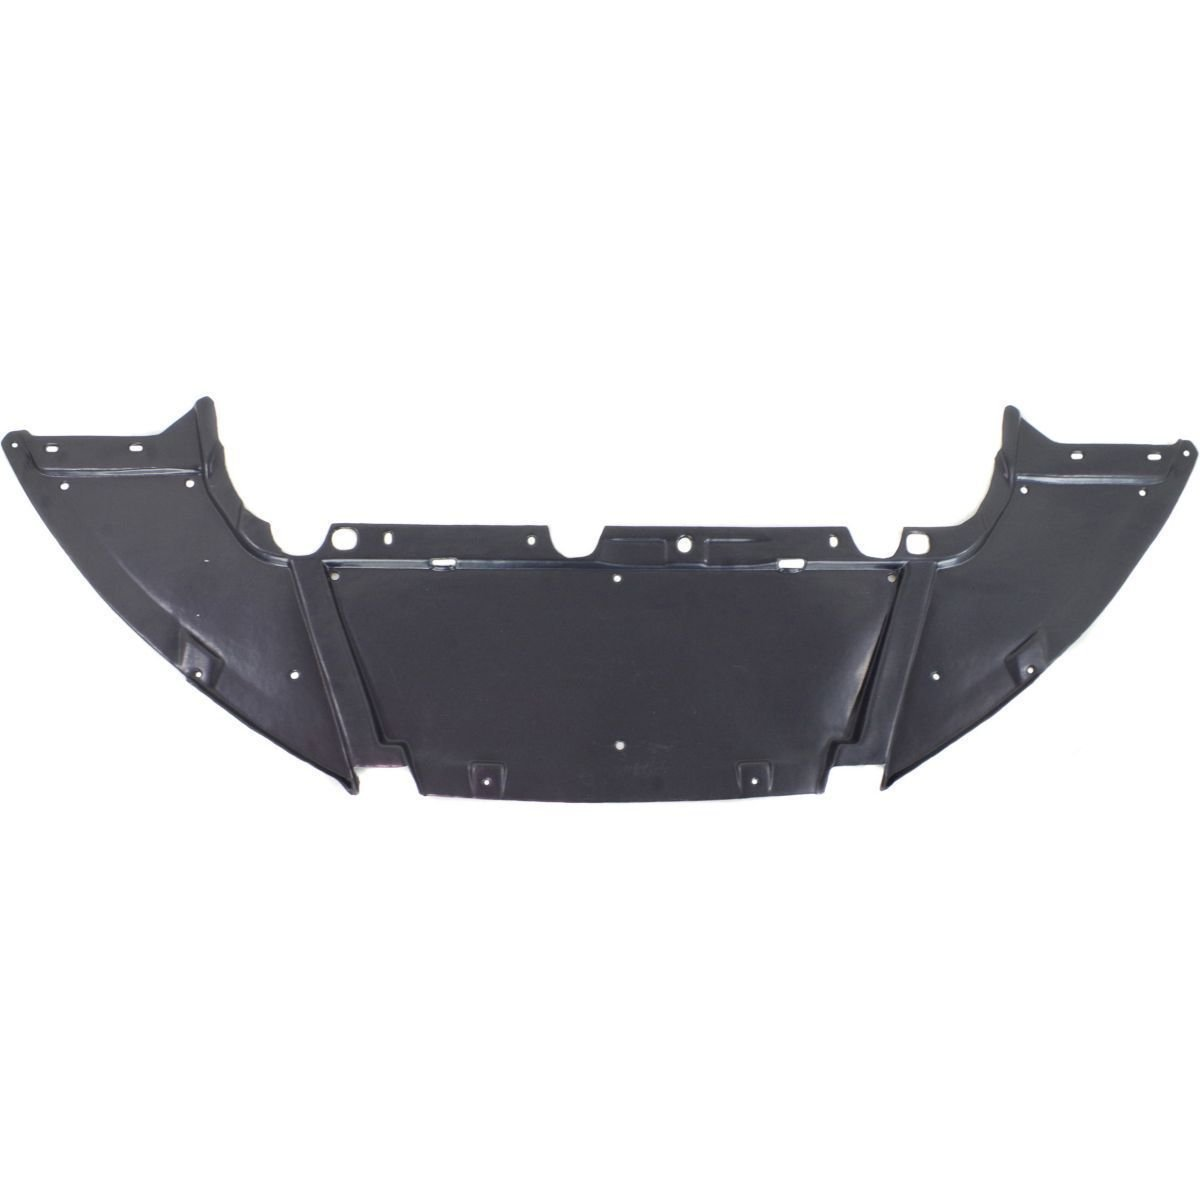 New Undercar Shield For 2012-2018 Ford Focus Sedan/Hatchback/Electric Models, Made Of Plastic FO1228119 CP9Z8310A Fitrite Autoparts